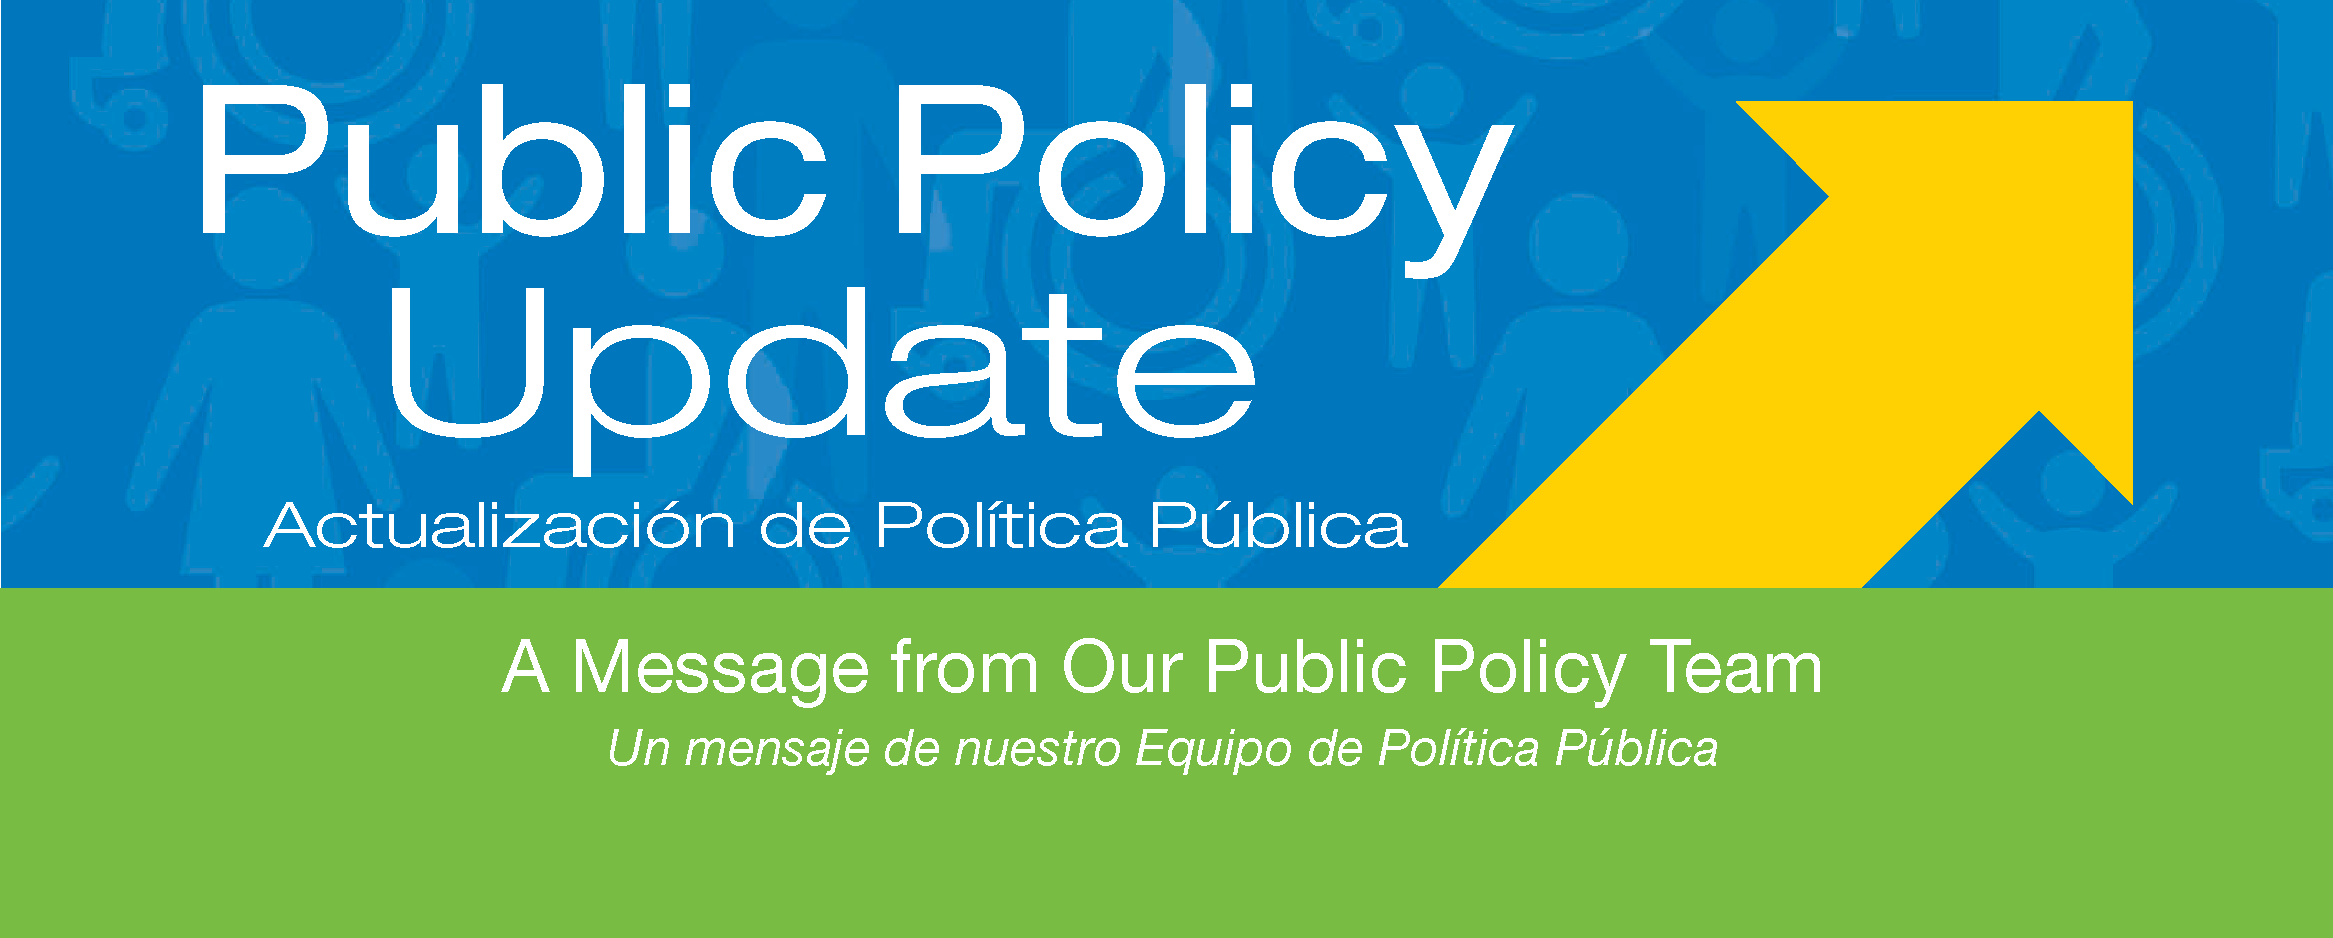 Public Policy Update - A Message from Our Public Policy Team